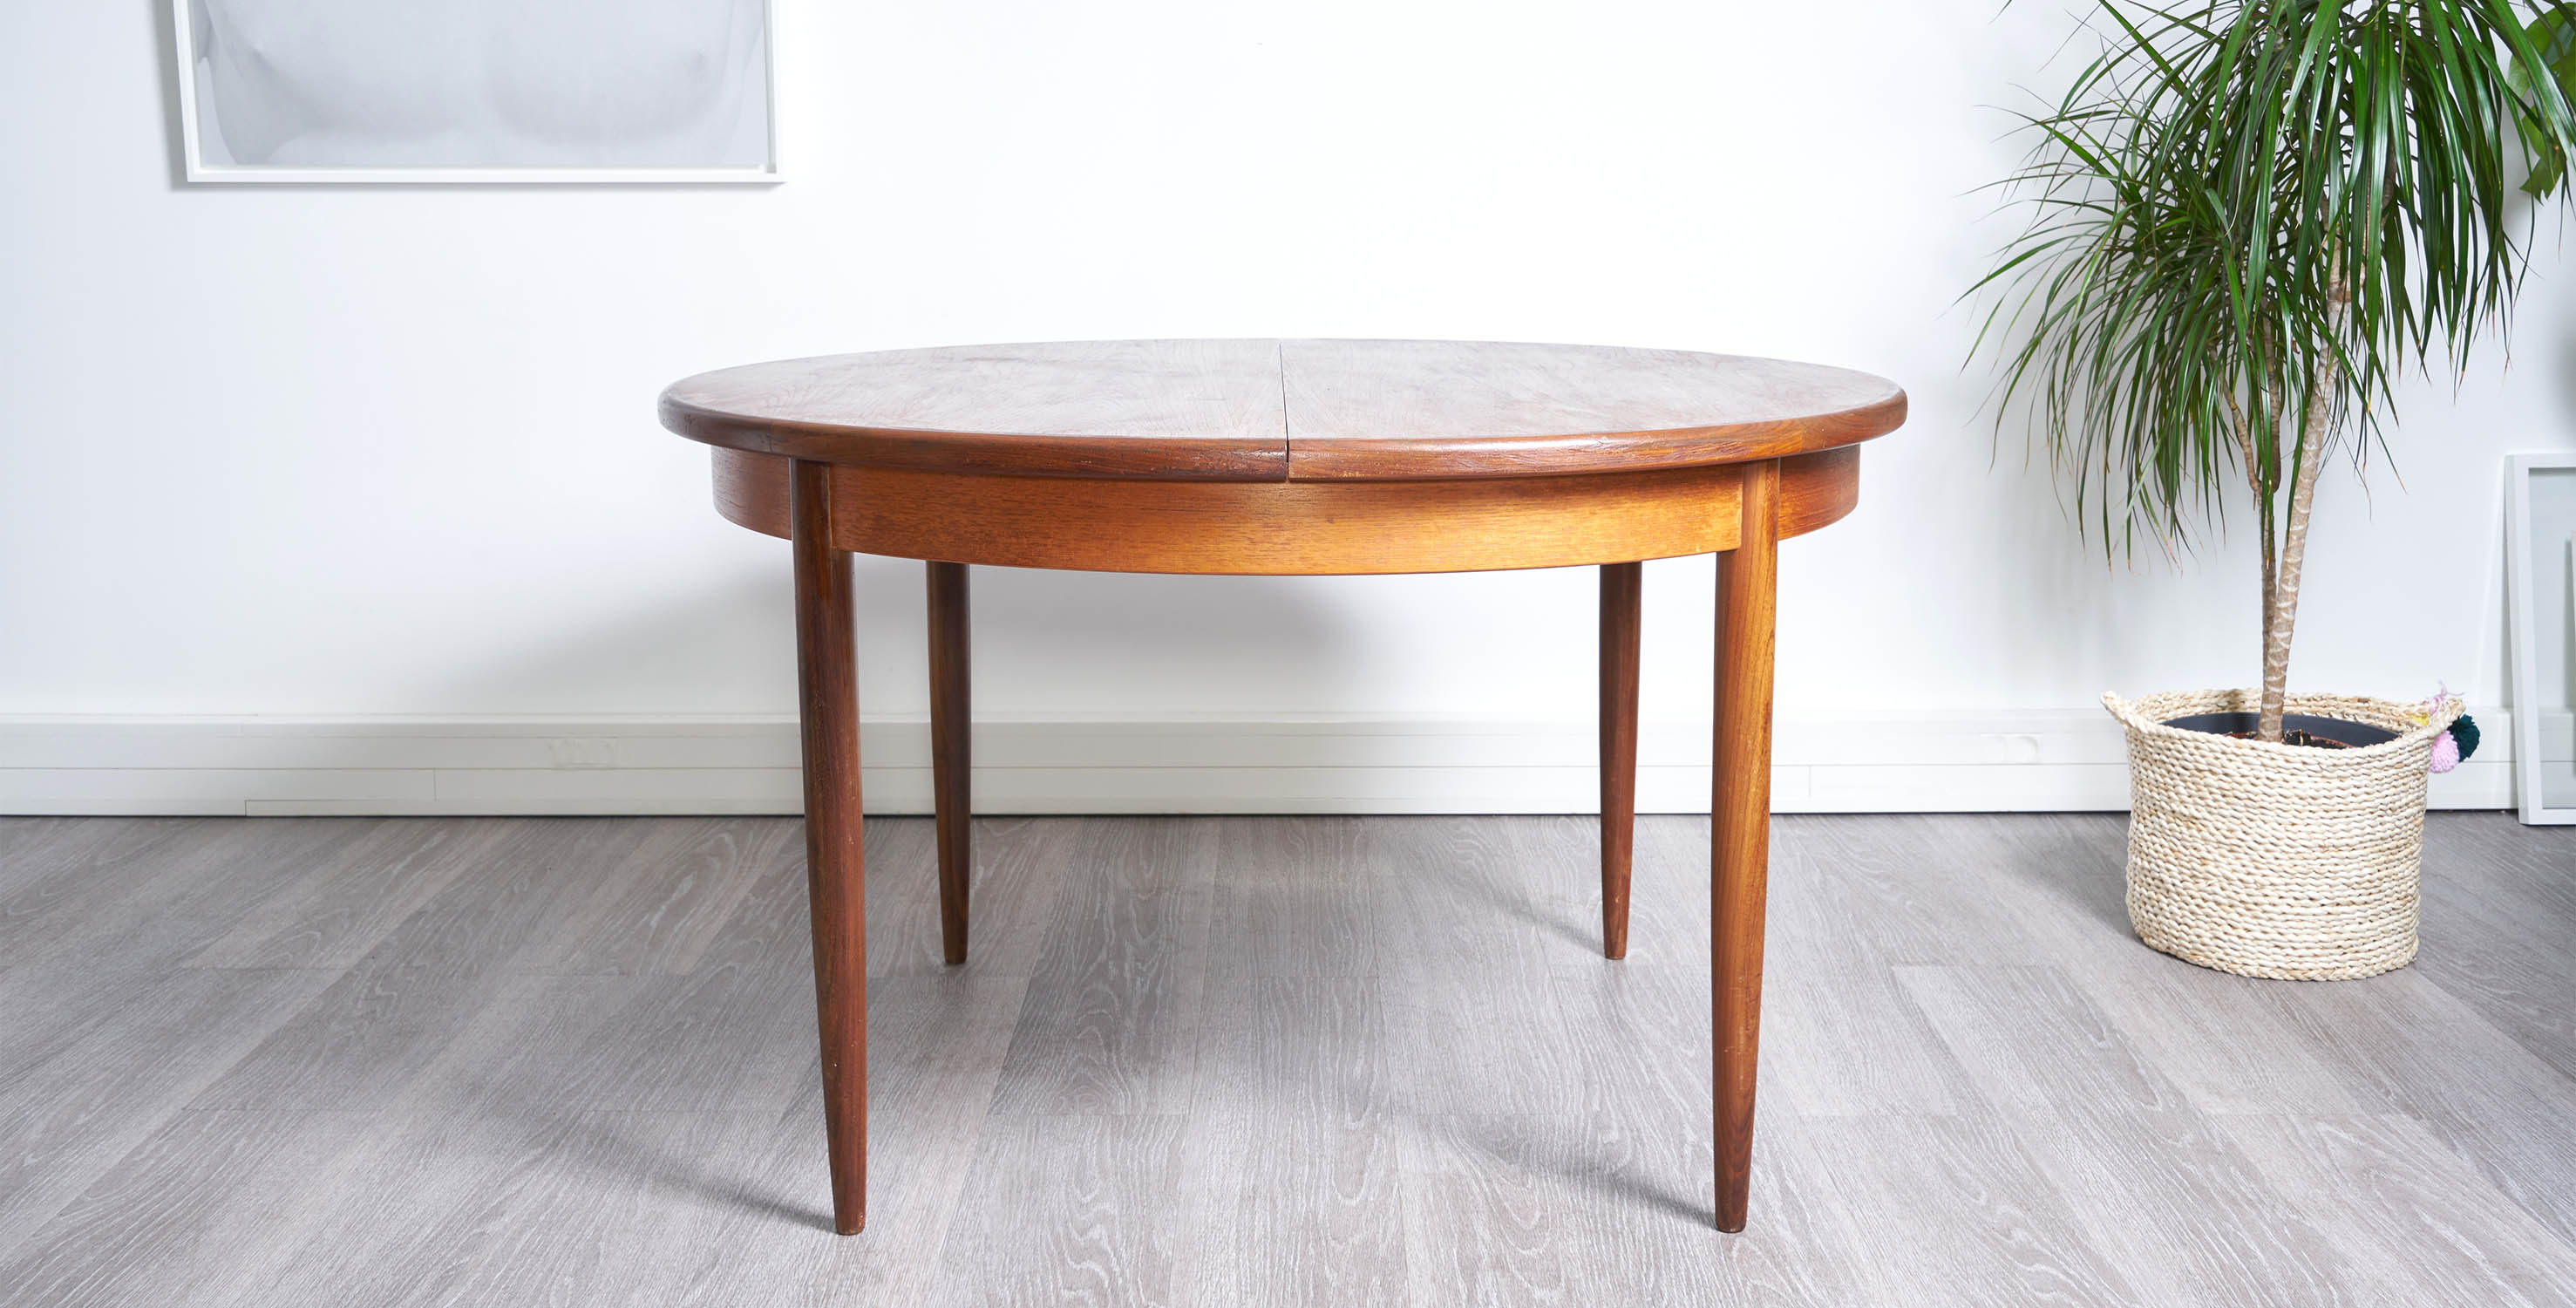 Table Ronde Extensible Scandinave.Table A Manger Ronde Extensible 1960 Style Scandinave